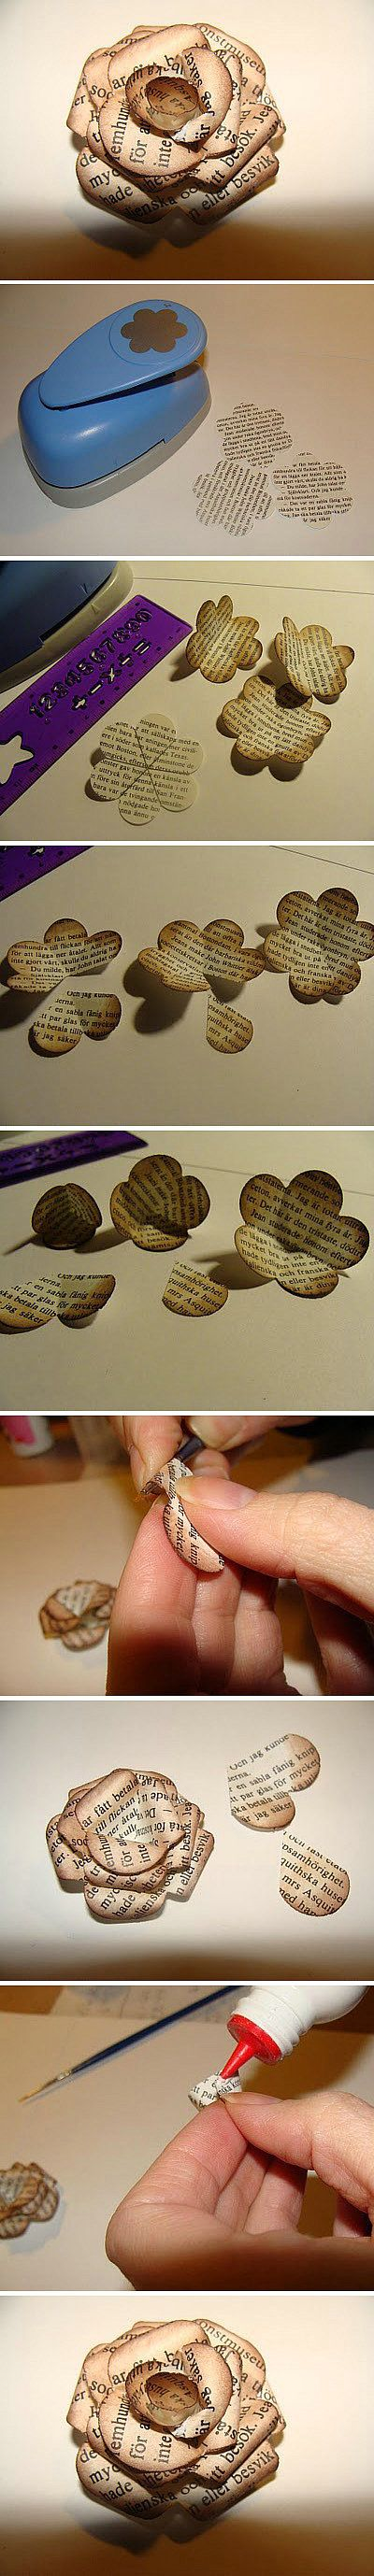 Flors de paper: Ideas, Flower Make, Paper Roses, Old Book Pages, Flower Tutorials, Paper Punch, Paper Flowers, Sheet Music, Paper Crafts